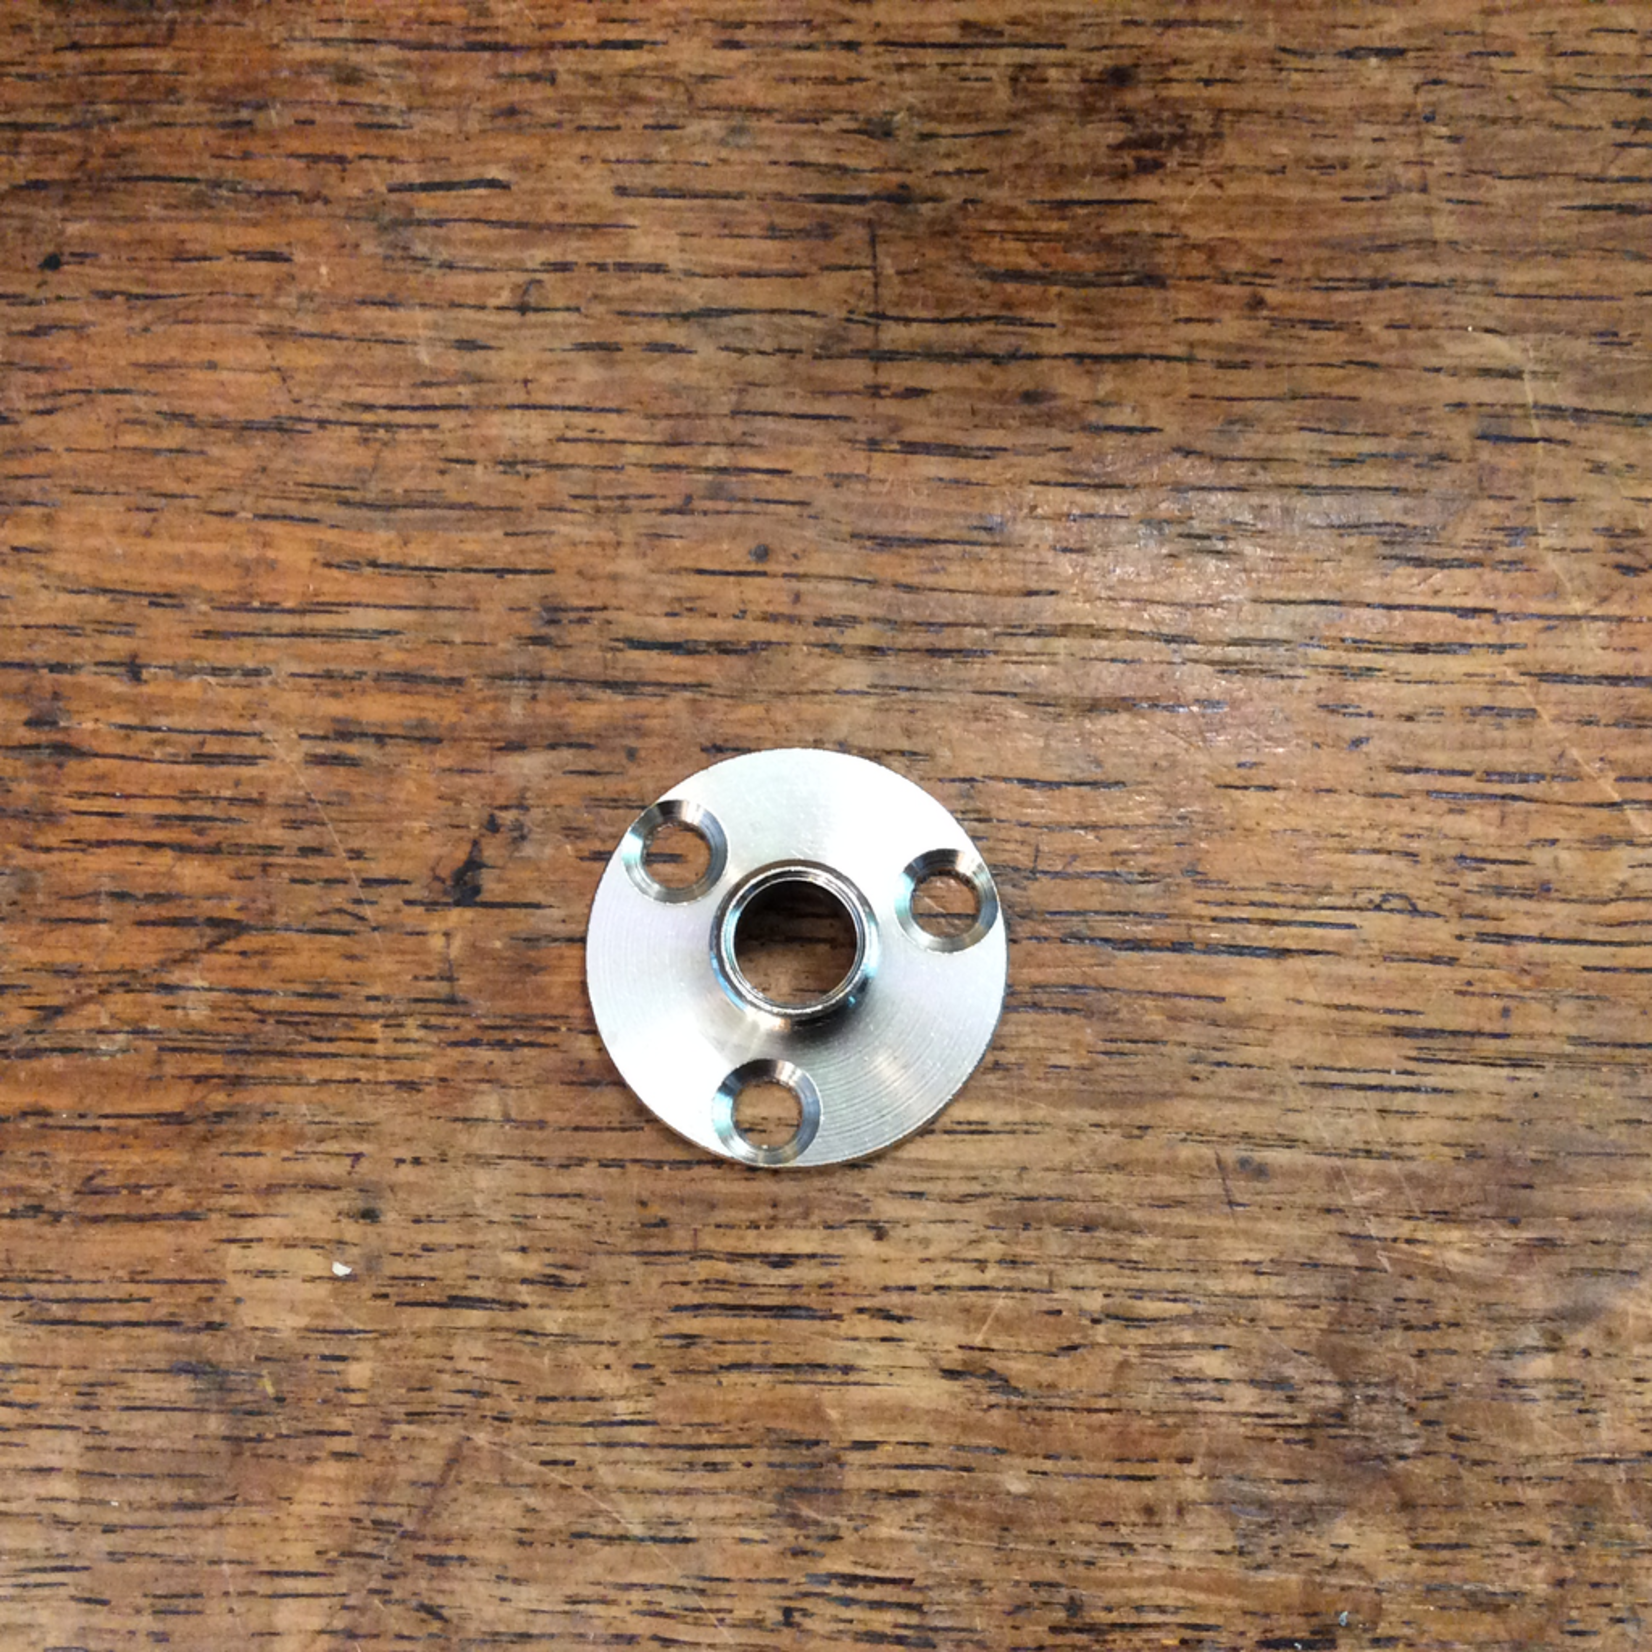 SL British Made 10MM BACKPLATE NICKEL PLATED BASE PLATE COMPONENT